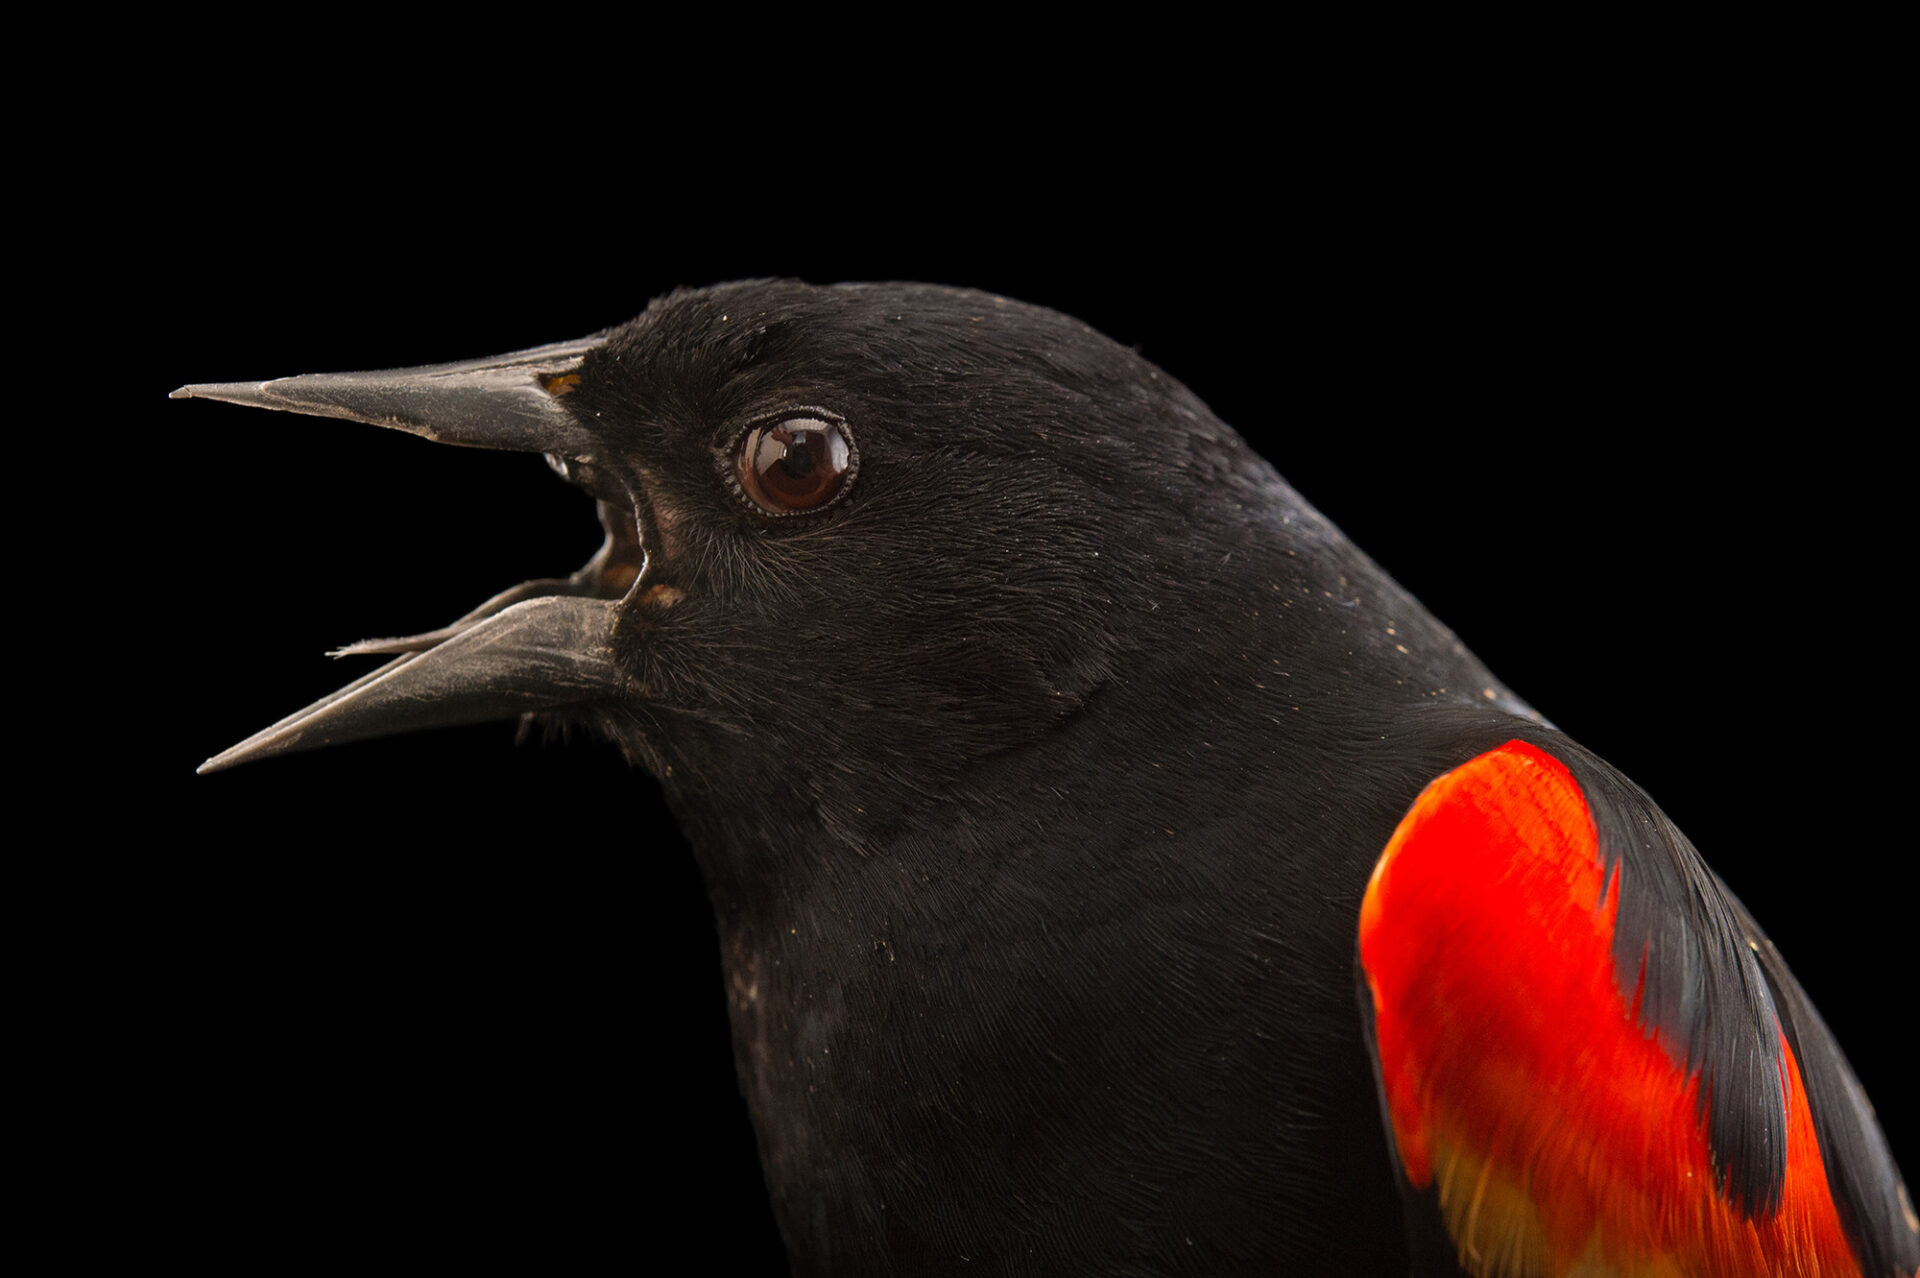 Picture of a Red-winged blackbird (Agelaius phoeniceus) at Tracy Aviary.